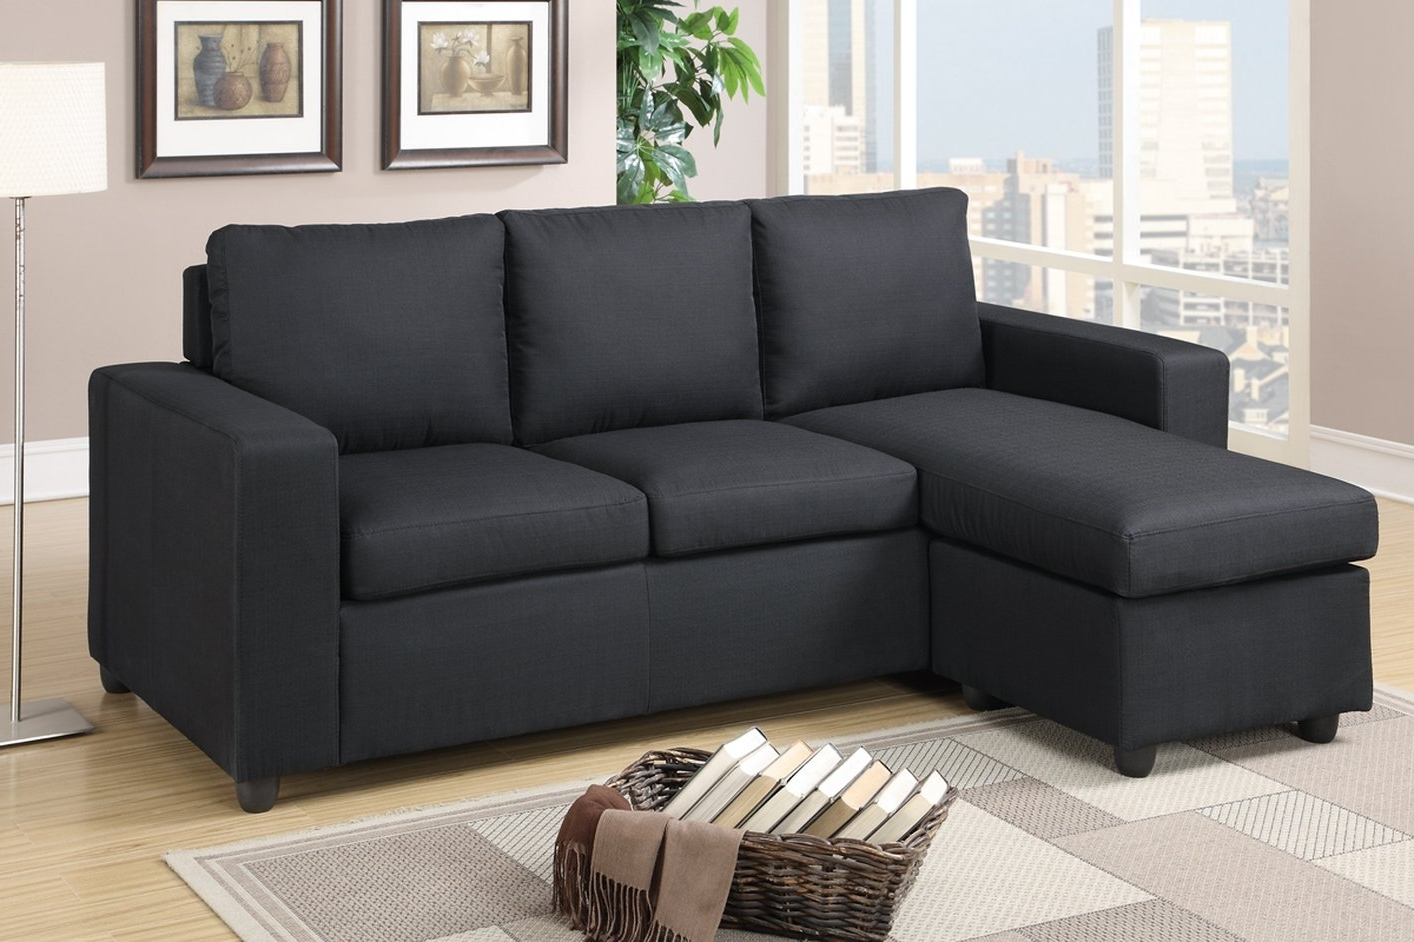 Black Sectional Sofas In Well Known Black Leather Reclining Sectional — Radionigerialagos (View 14 of 20)